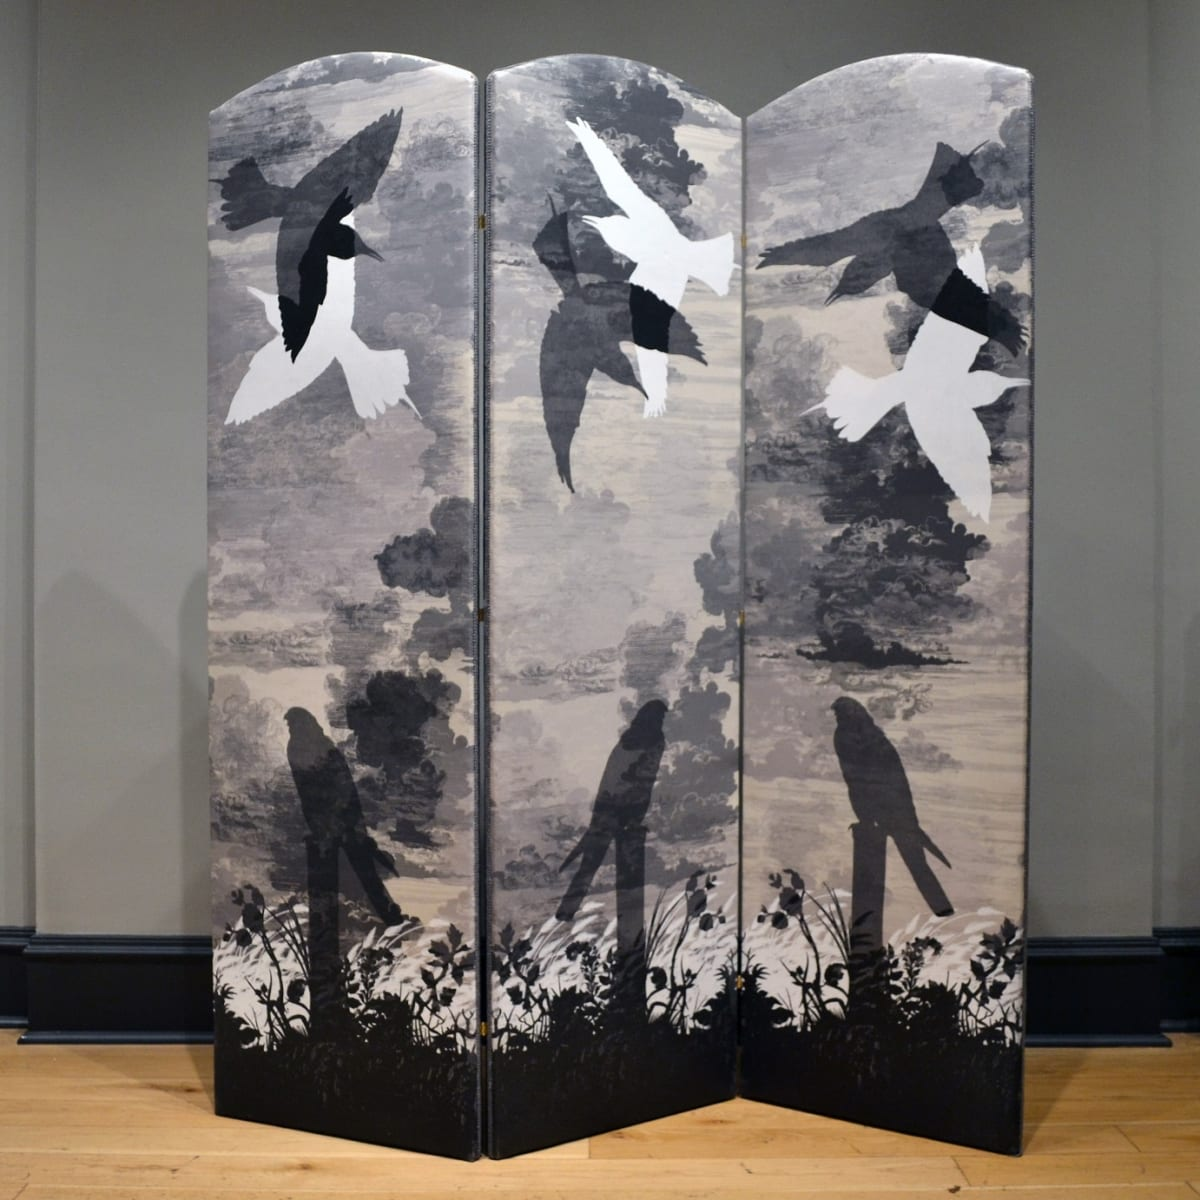 Timorous Beasties Grey Kes, 2019 folding screen upholstered in Cloud Toile fabric with one-off screen print design 180 x 154.5 cm (3 panels, 51.5 cm width each)